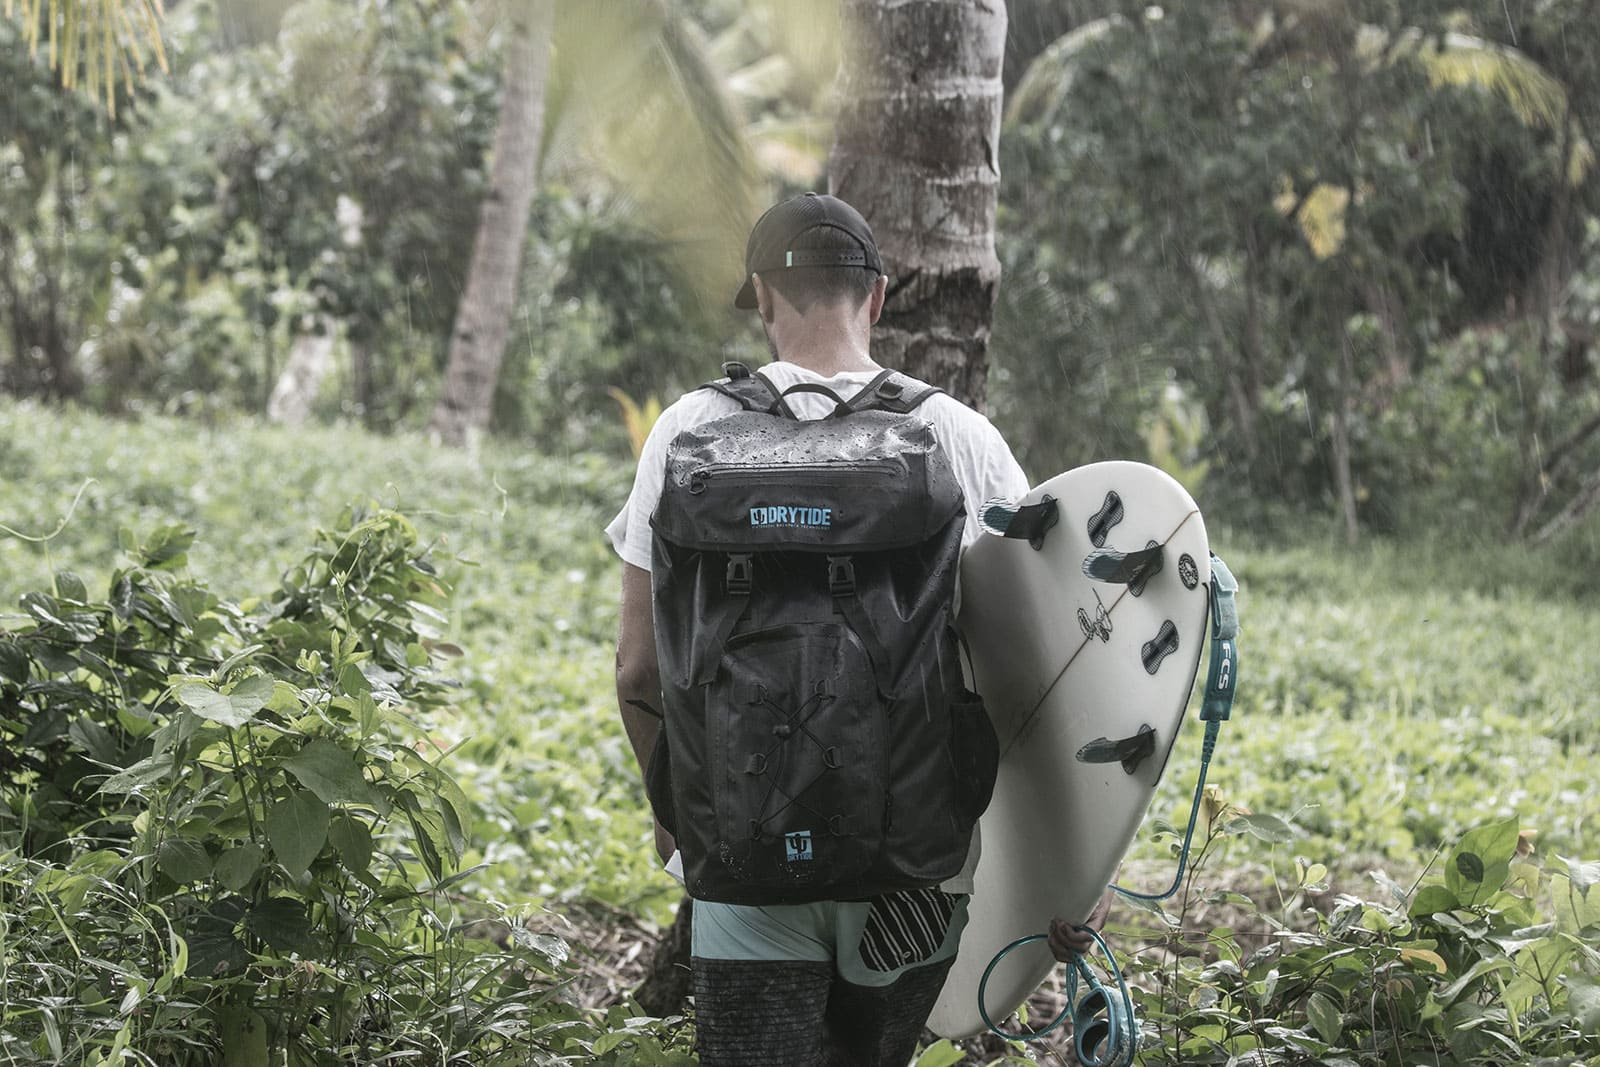 Surfer trekking through the jungle carrying a surfboard and a waterproof backpack